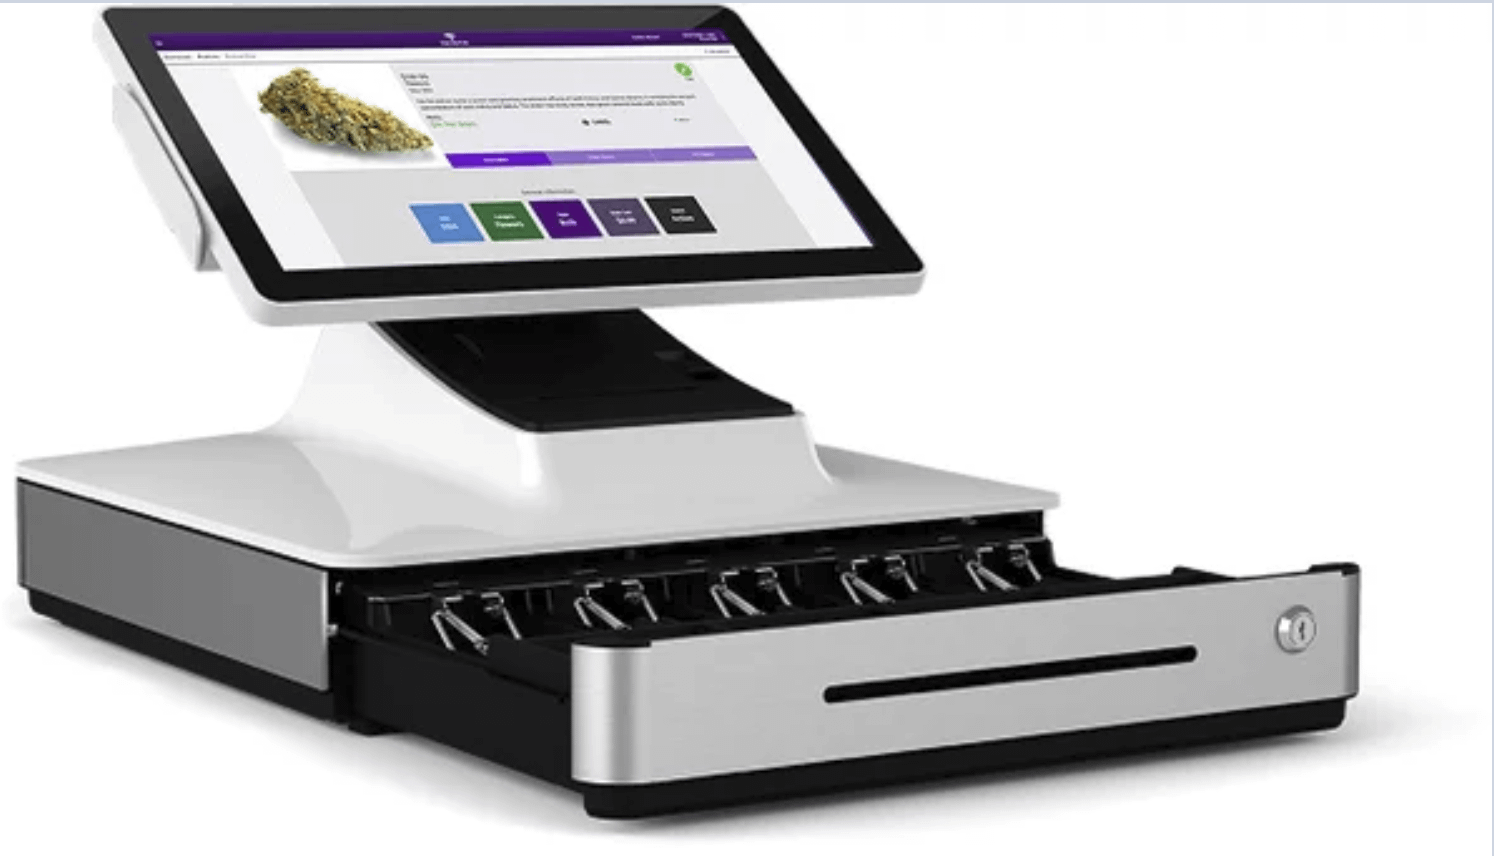 7 Factors To Consider Before Choosing a Cannabis POS System for your Cannabis Store